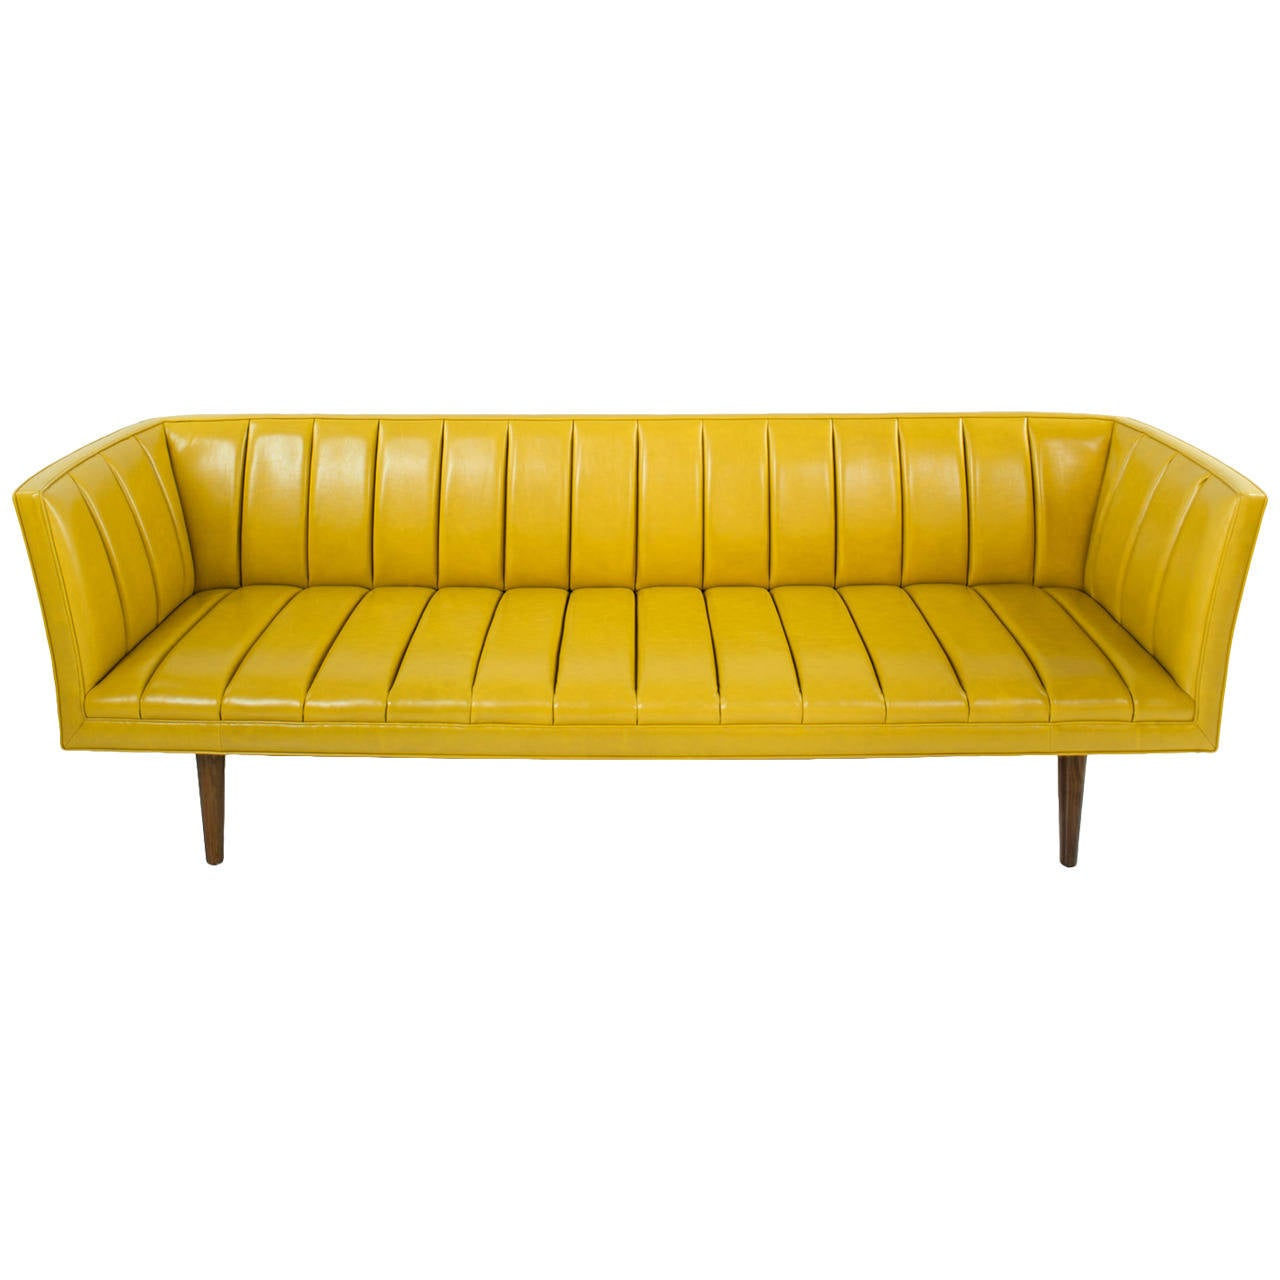 Yellow Leather Sectional Sofa: Famechon Sofa With Channeled Back And Seat, Walnut Legs